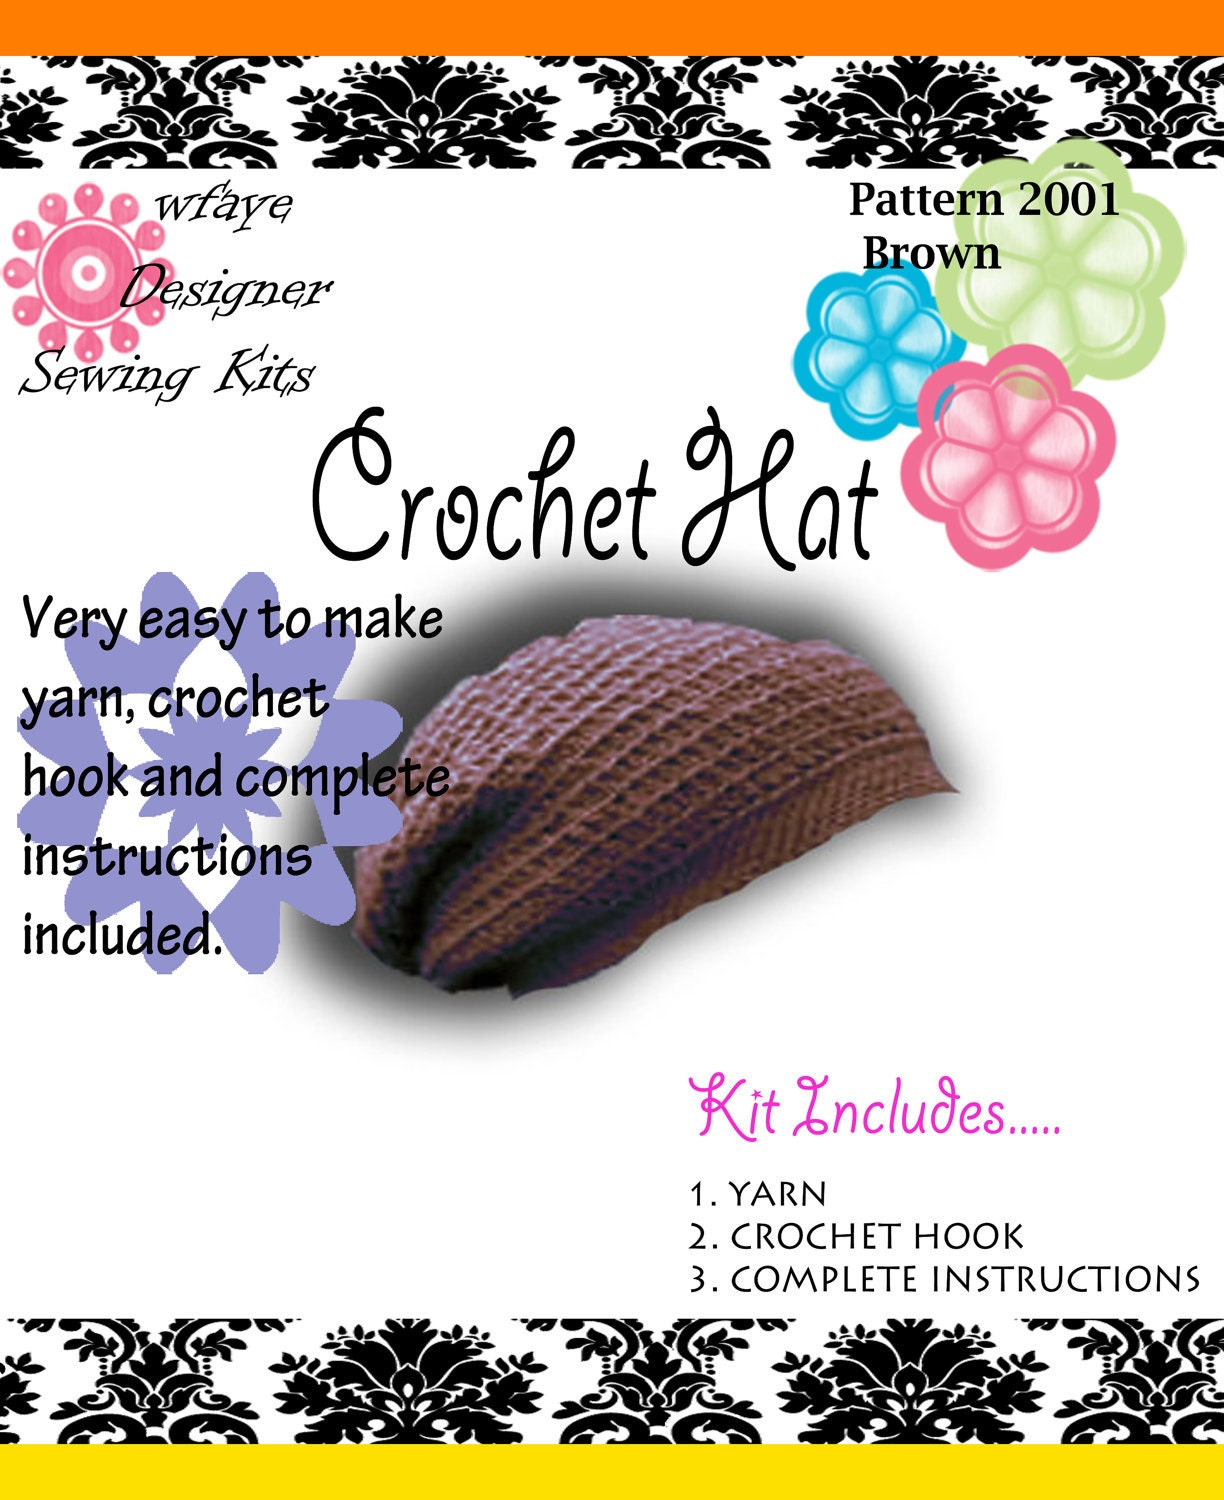 il 170x135.285051414 Etsy Treasury: Fun Crochet Kits